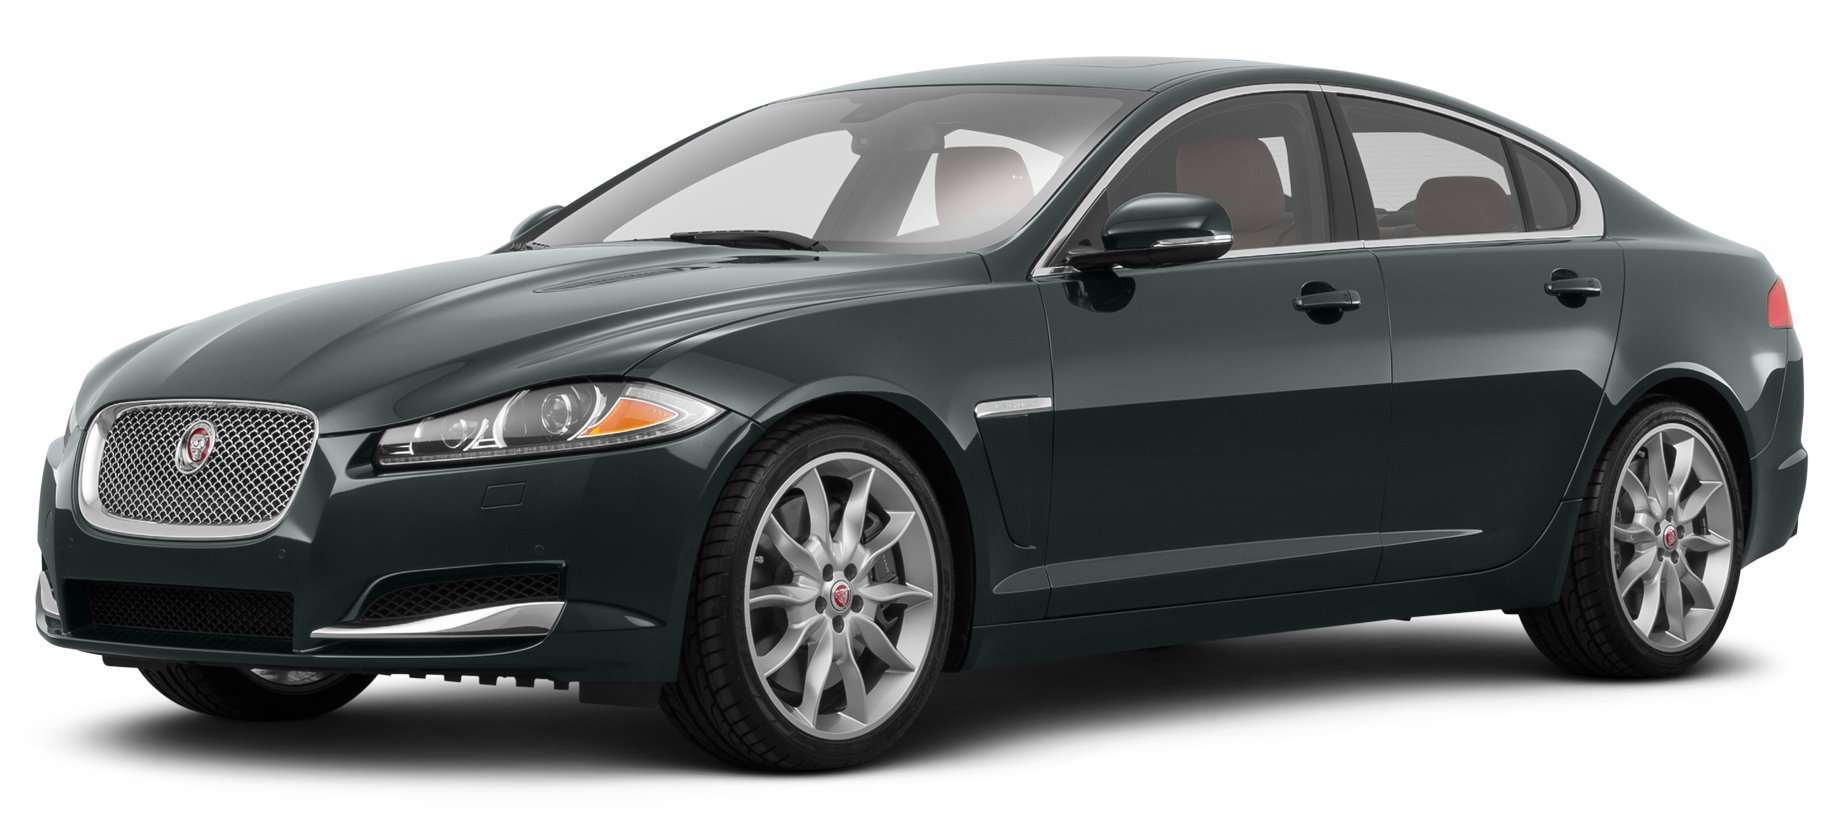 great neck l near jaguar stock ny c htm sale for used sport xf